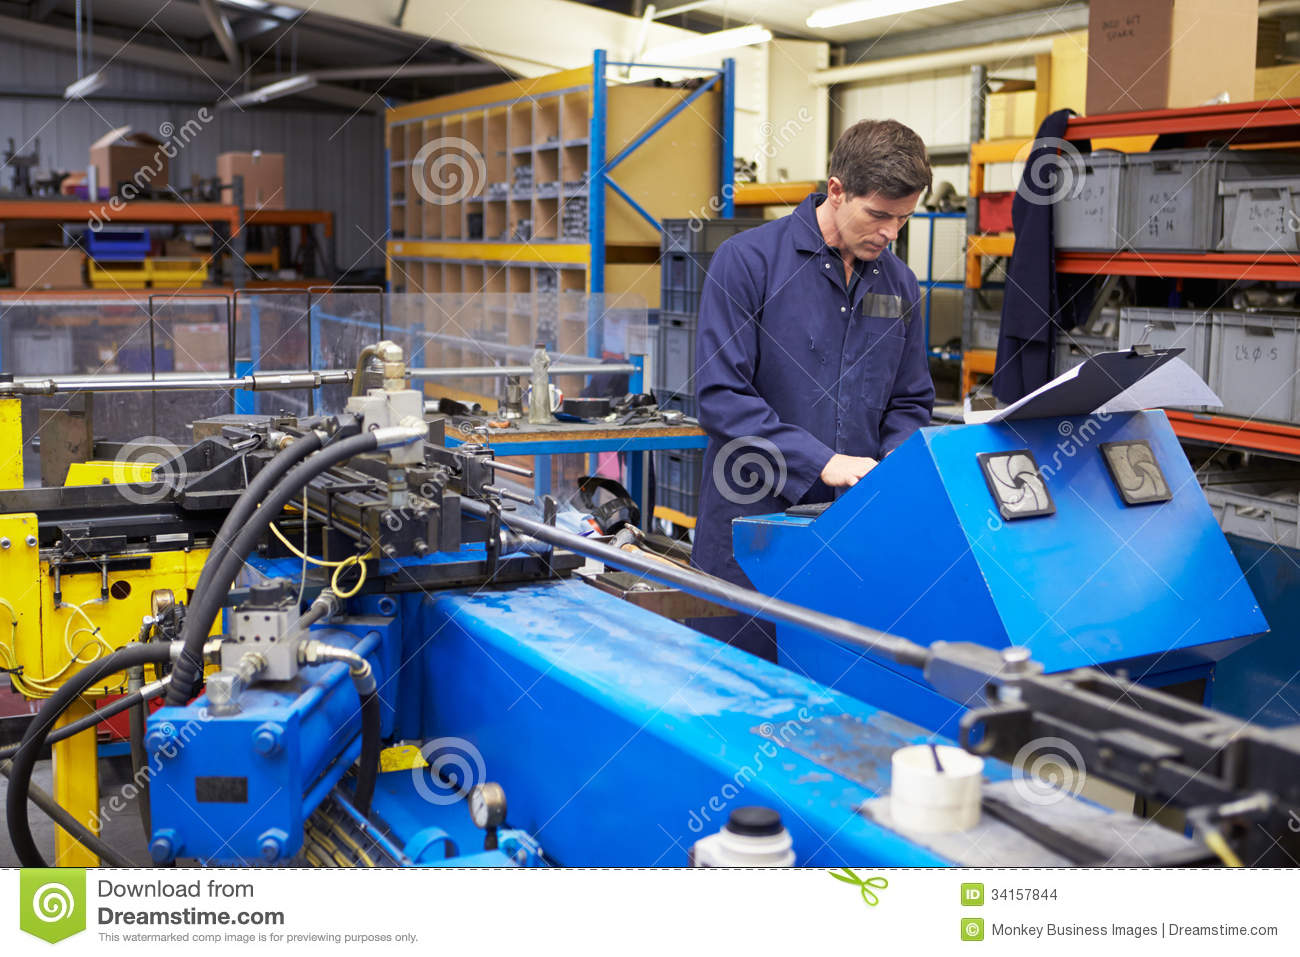 how to become a hydraulic engineer